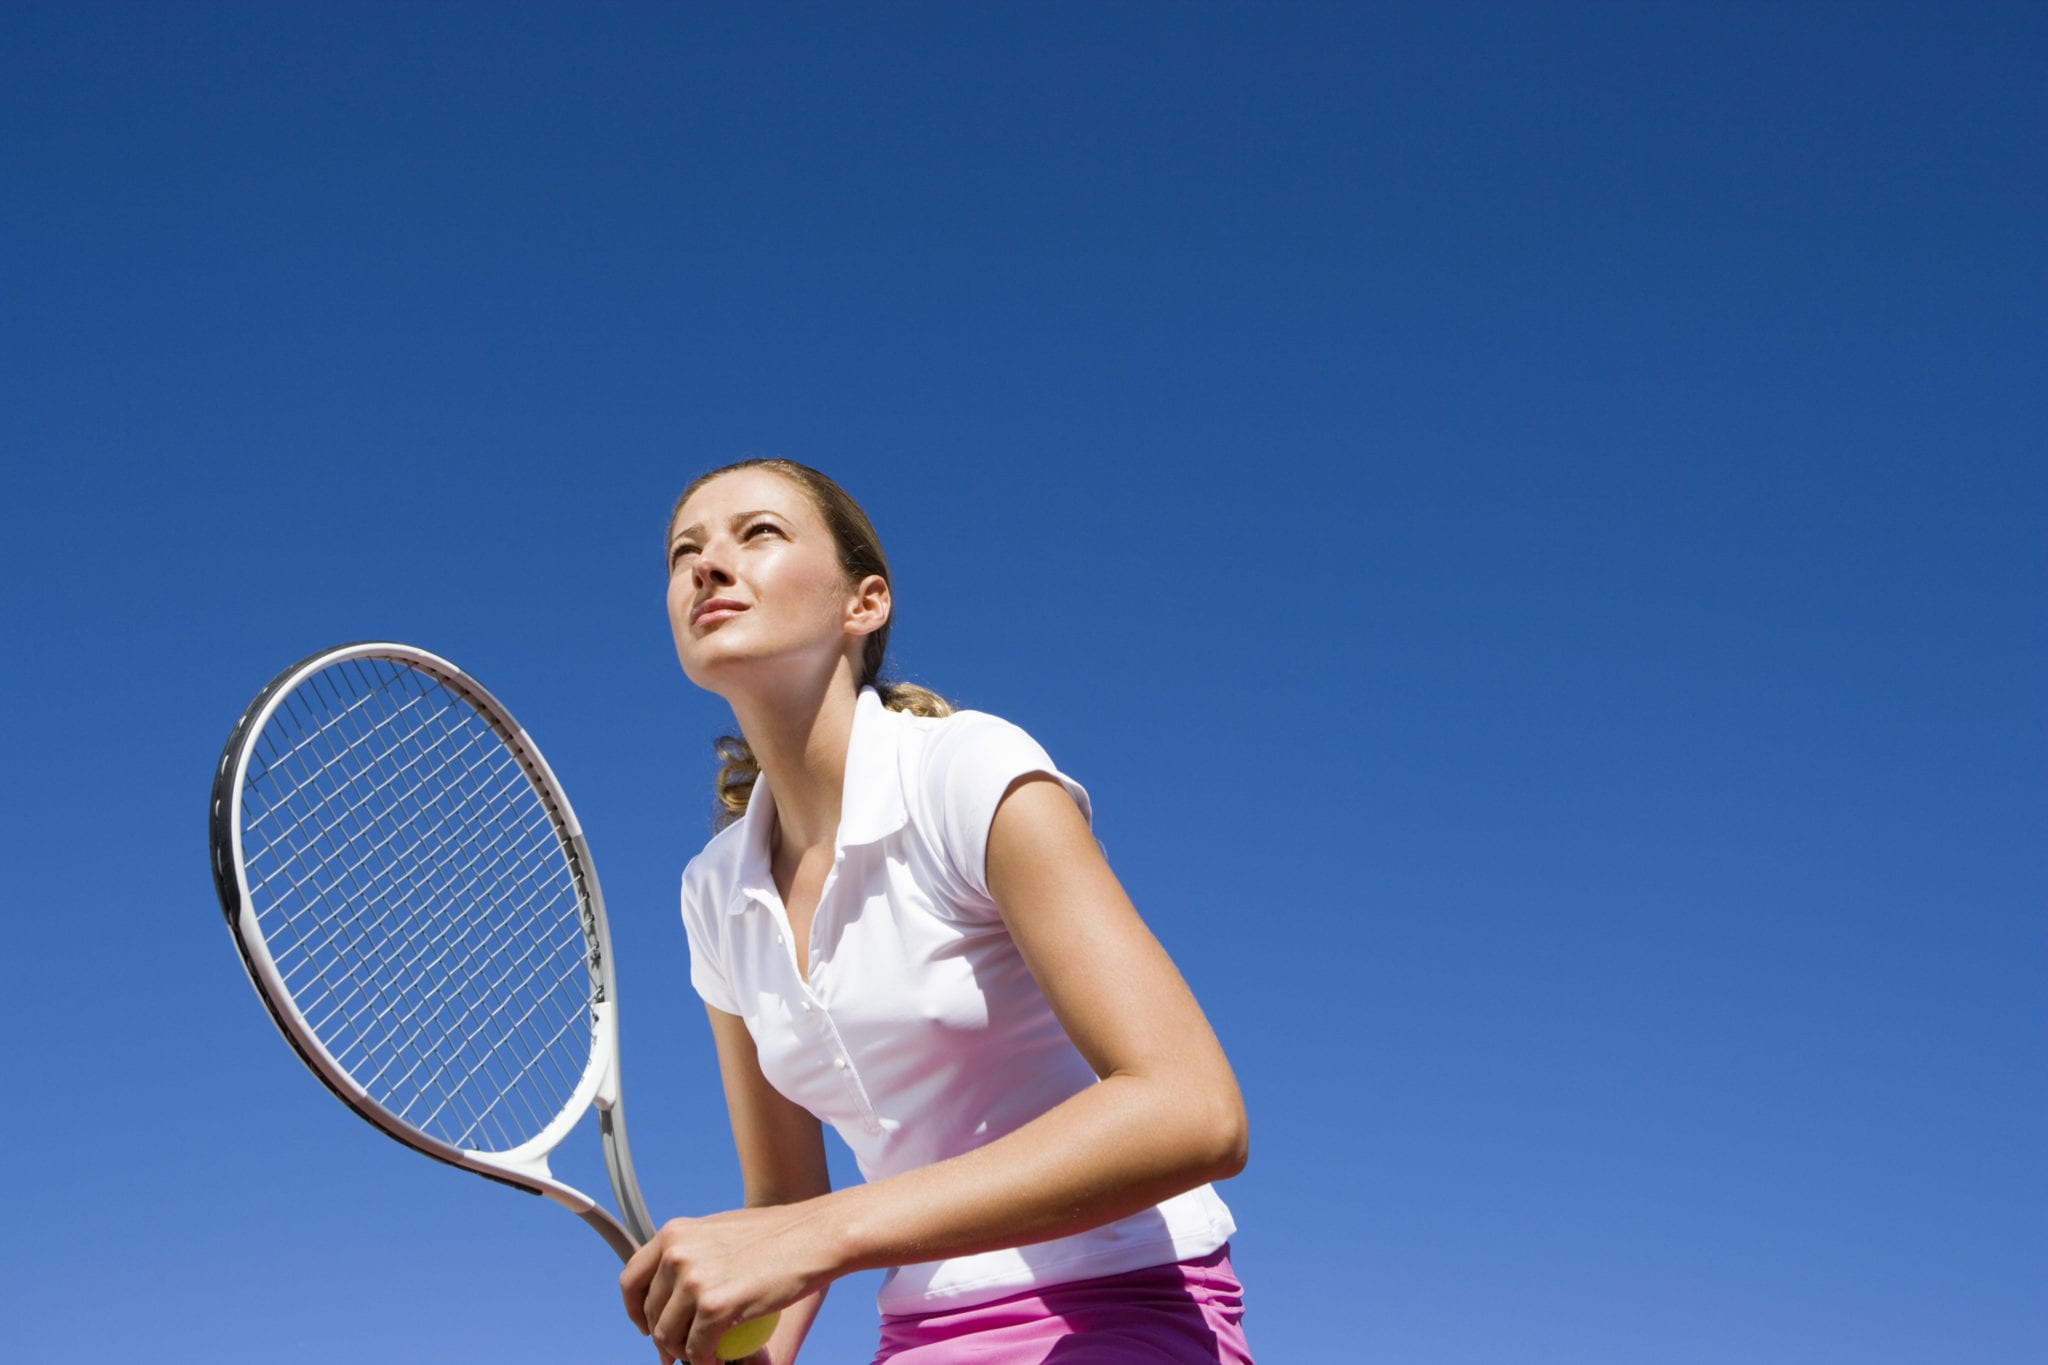 How do I start playing tennis? And what are the health benefits?